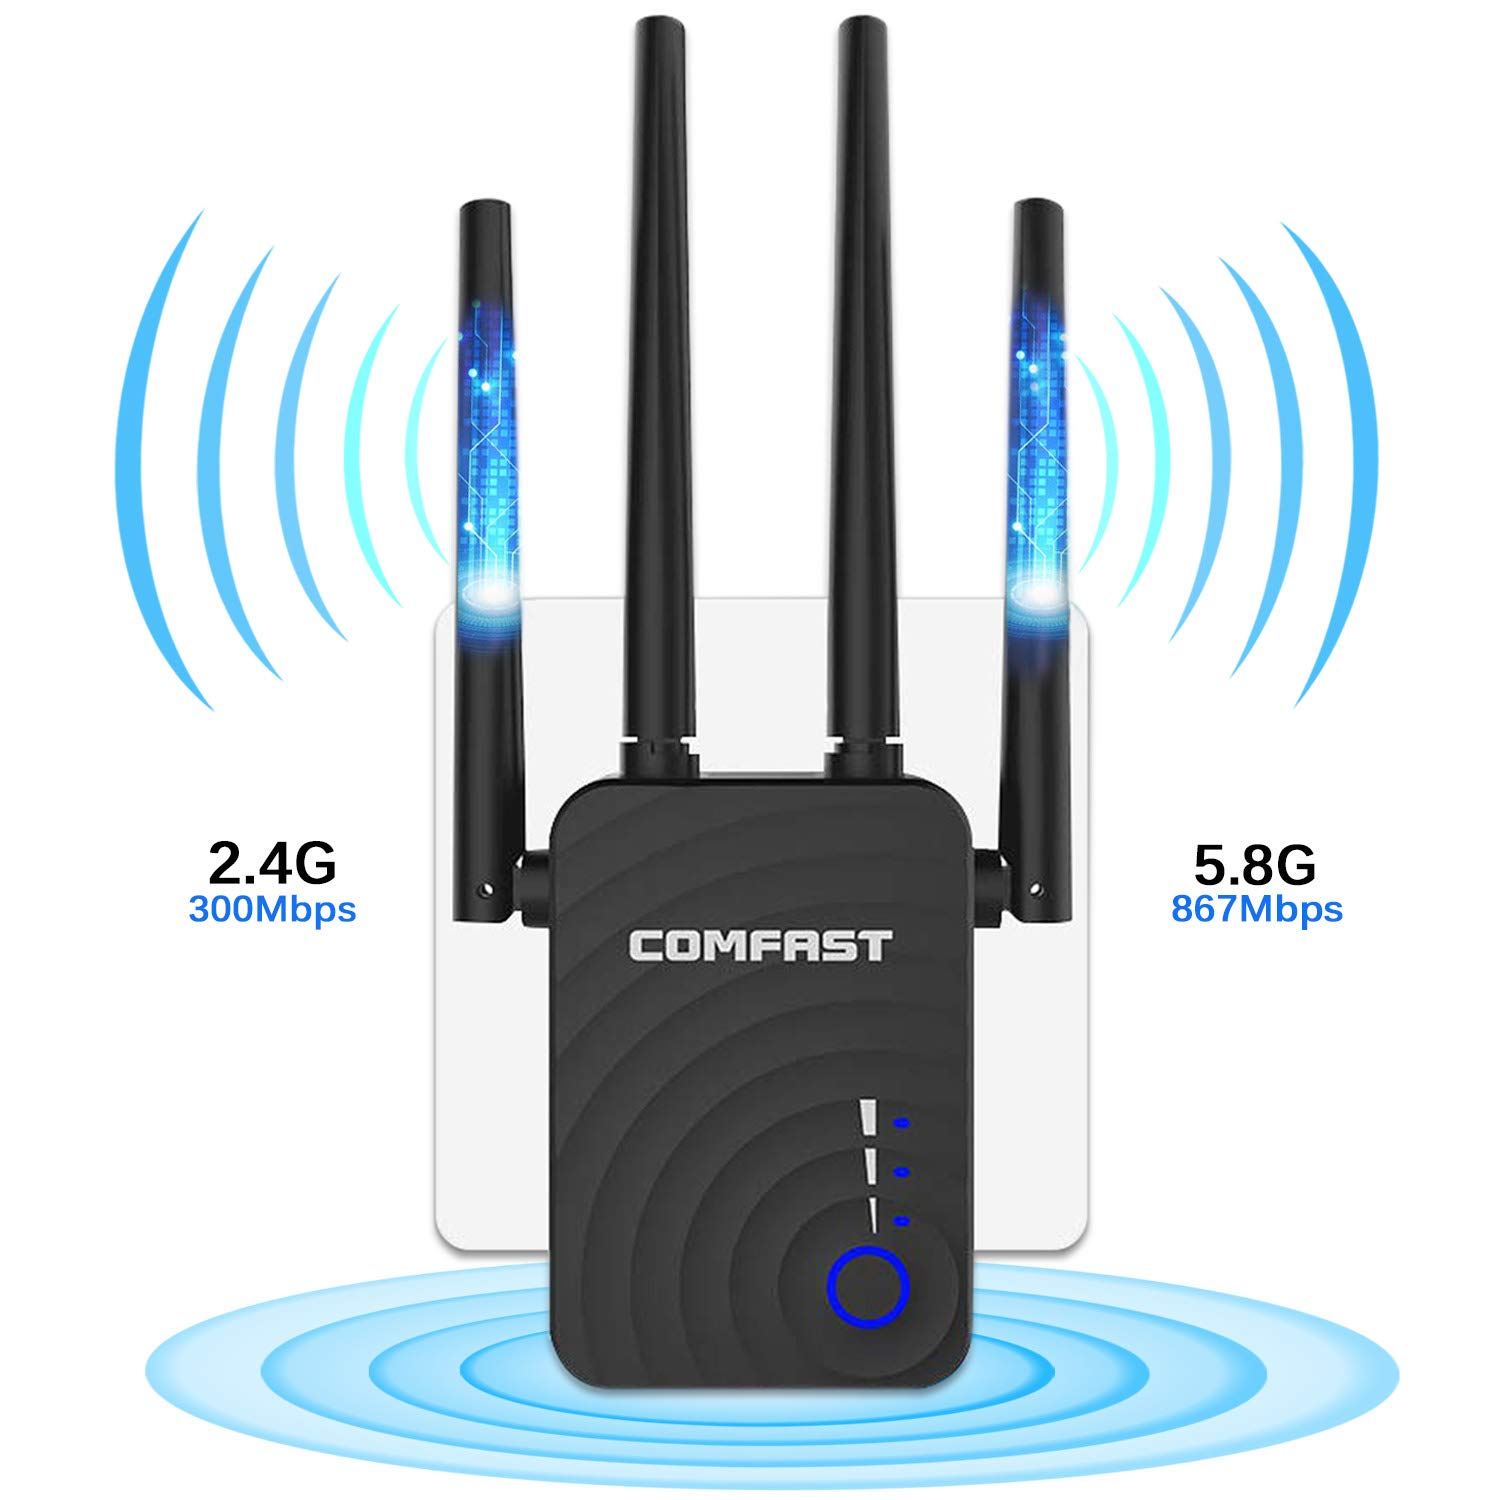 【Upgraded Version】COMFAST WiFi Range Extender WiFi Repeater, AC 1200Mbps Wireless Signal Enhancer, Dual Band 2.4G and 5G Expander, 4 Antenna wireless Access, Gigabit Ethernet Port, 360 Degree Coverage by Comfast